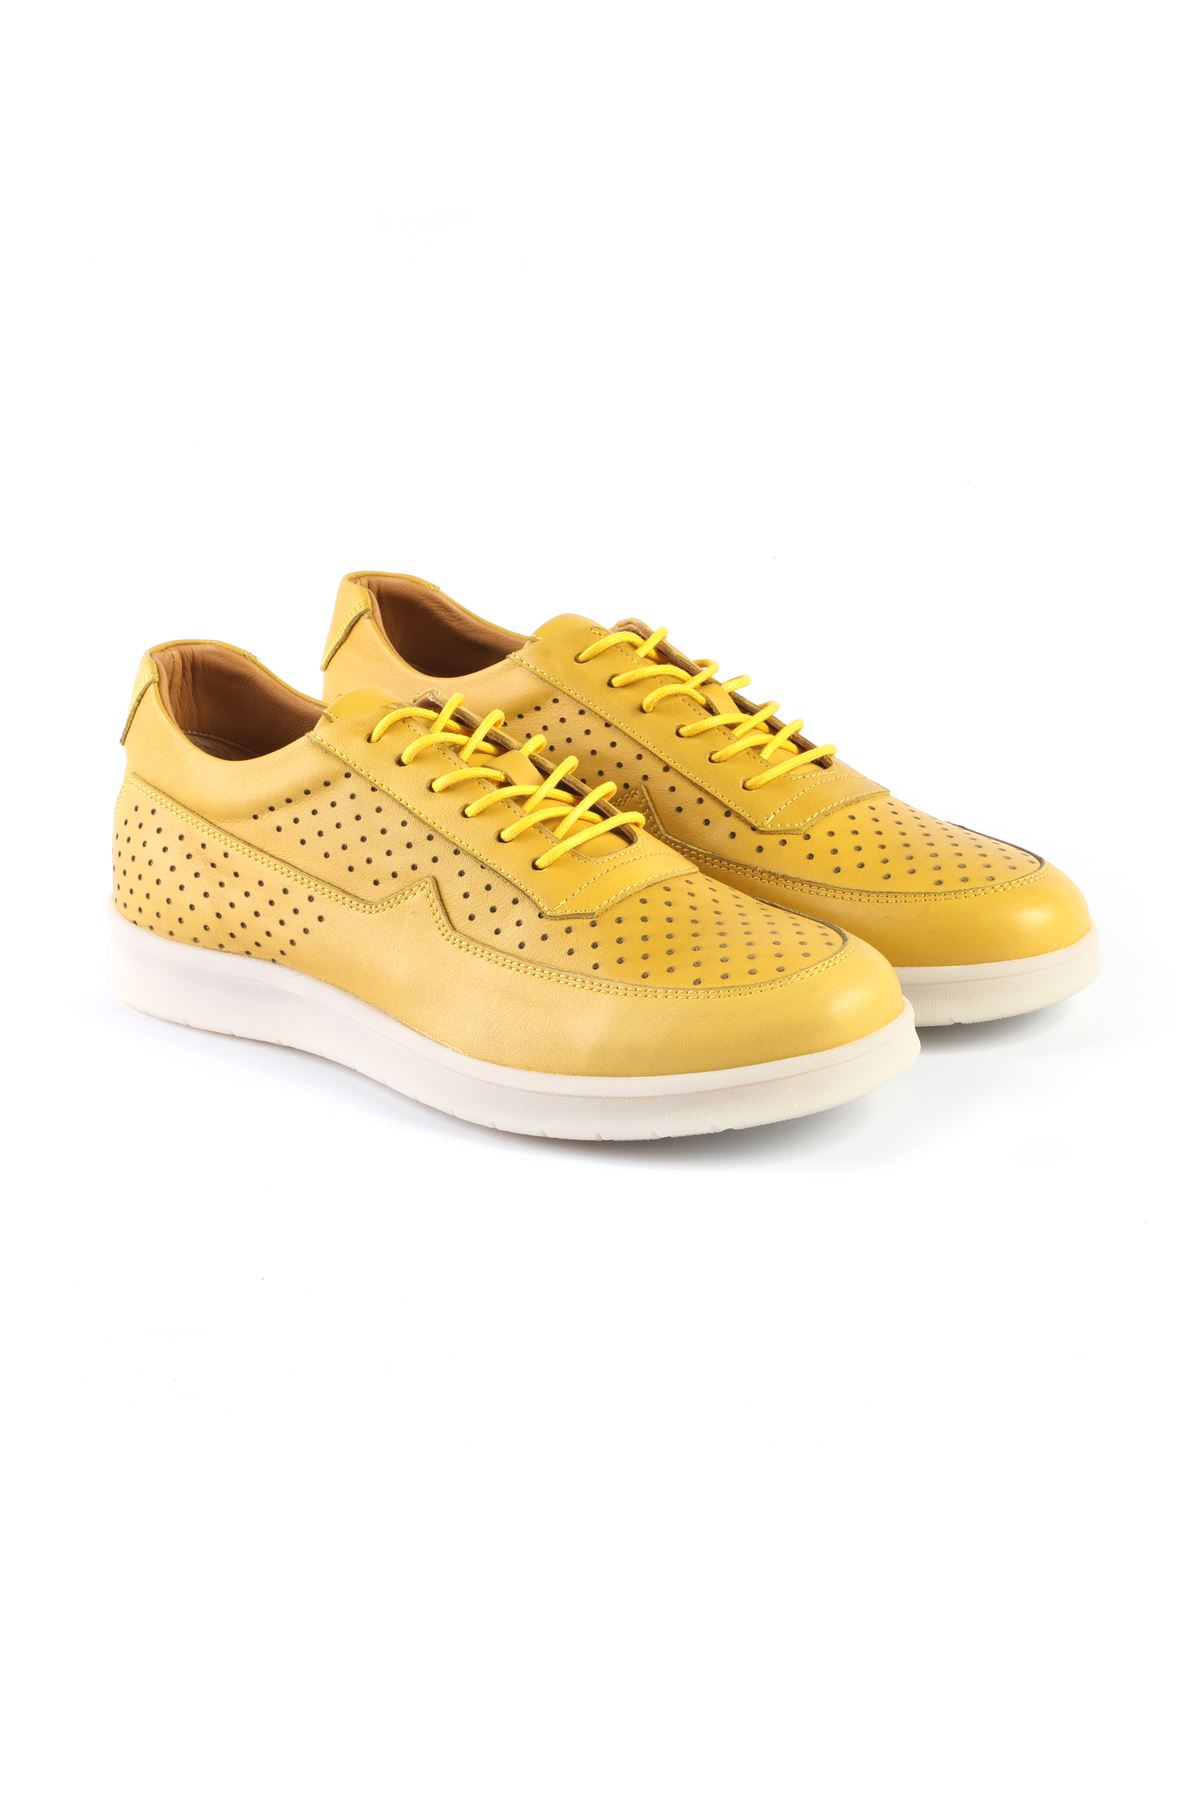 Libero 3241 Yellow Sports Shoes